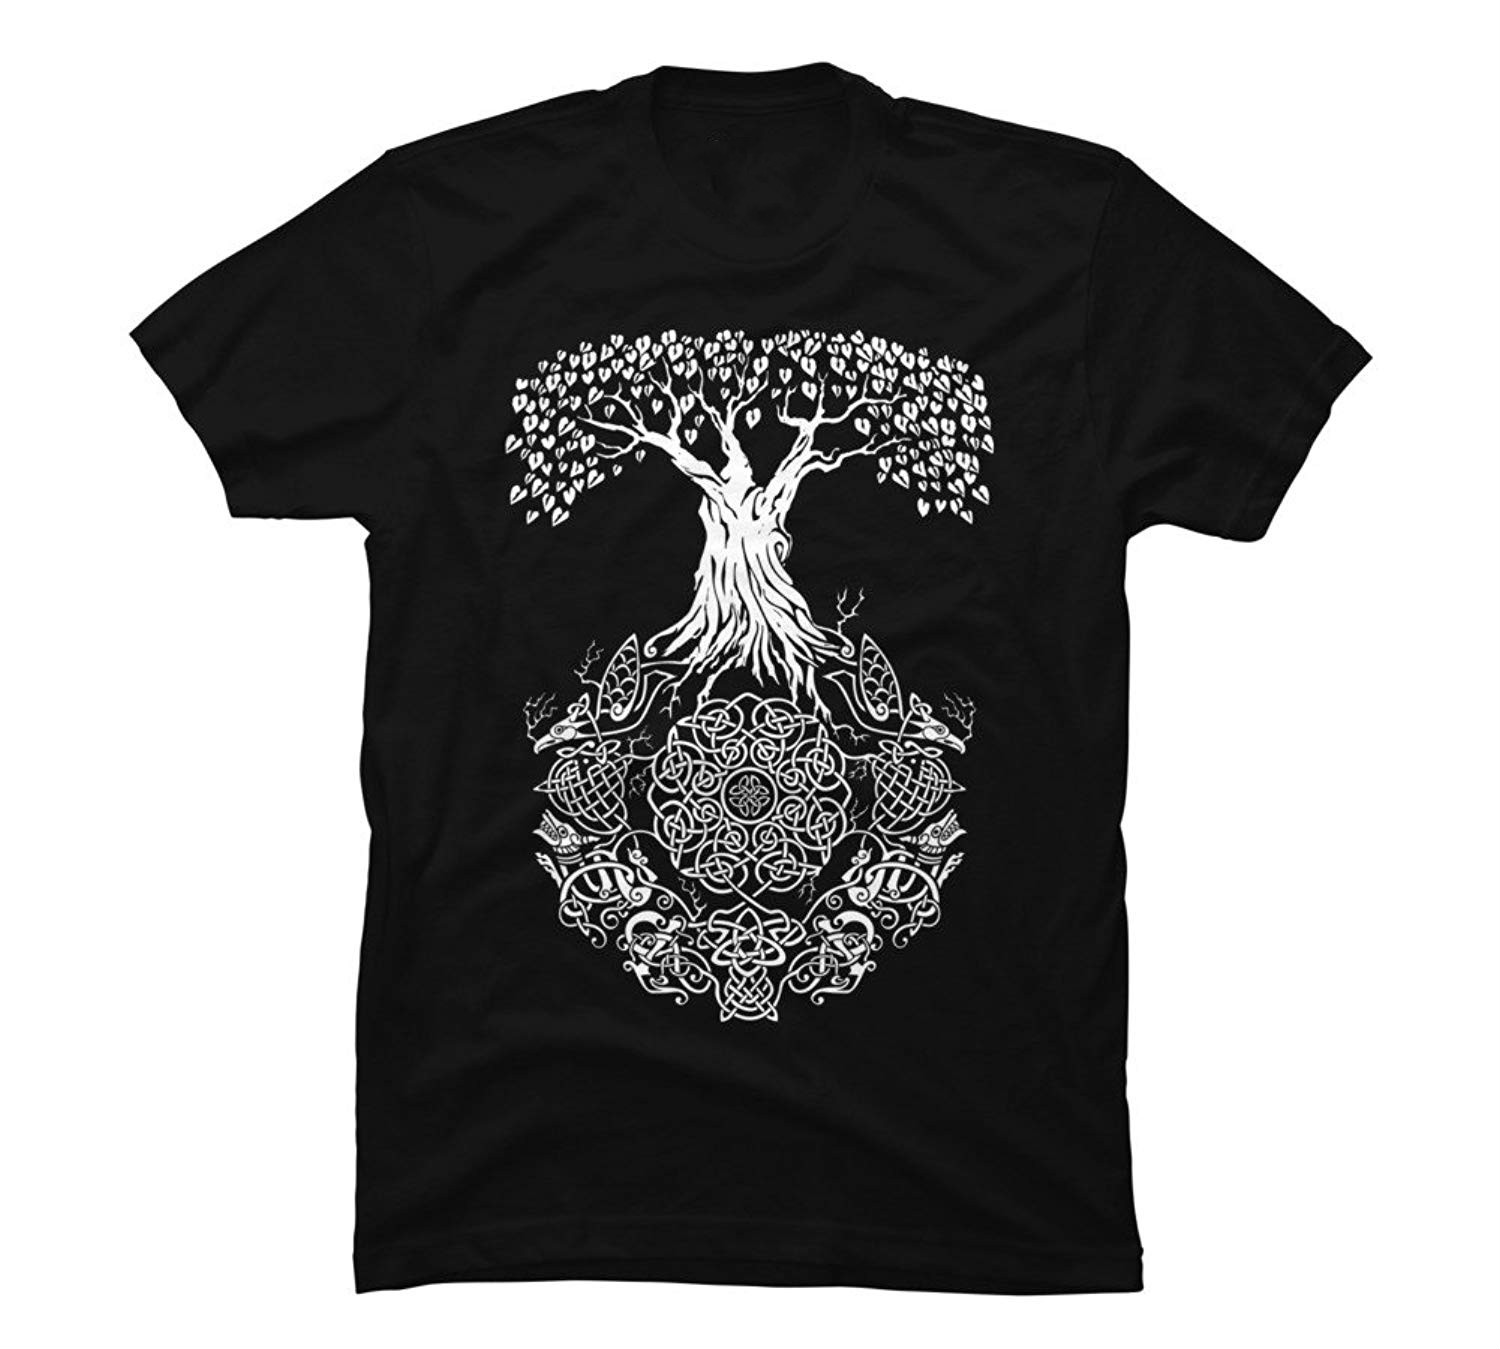 Yggdrasil Tree of Life Men's Graphic Design By Humans Hip Hop Novelty T Shirts Men'S Brand Clothing top